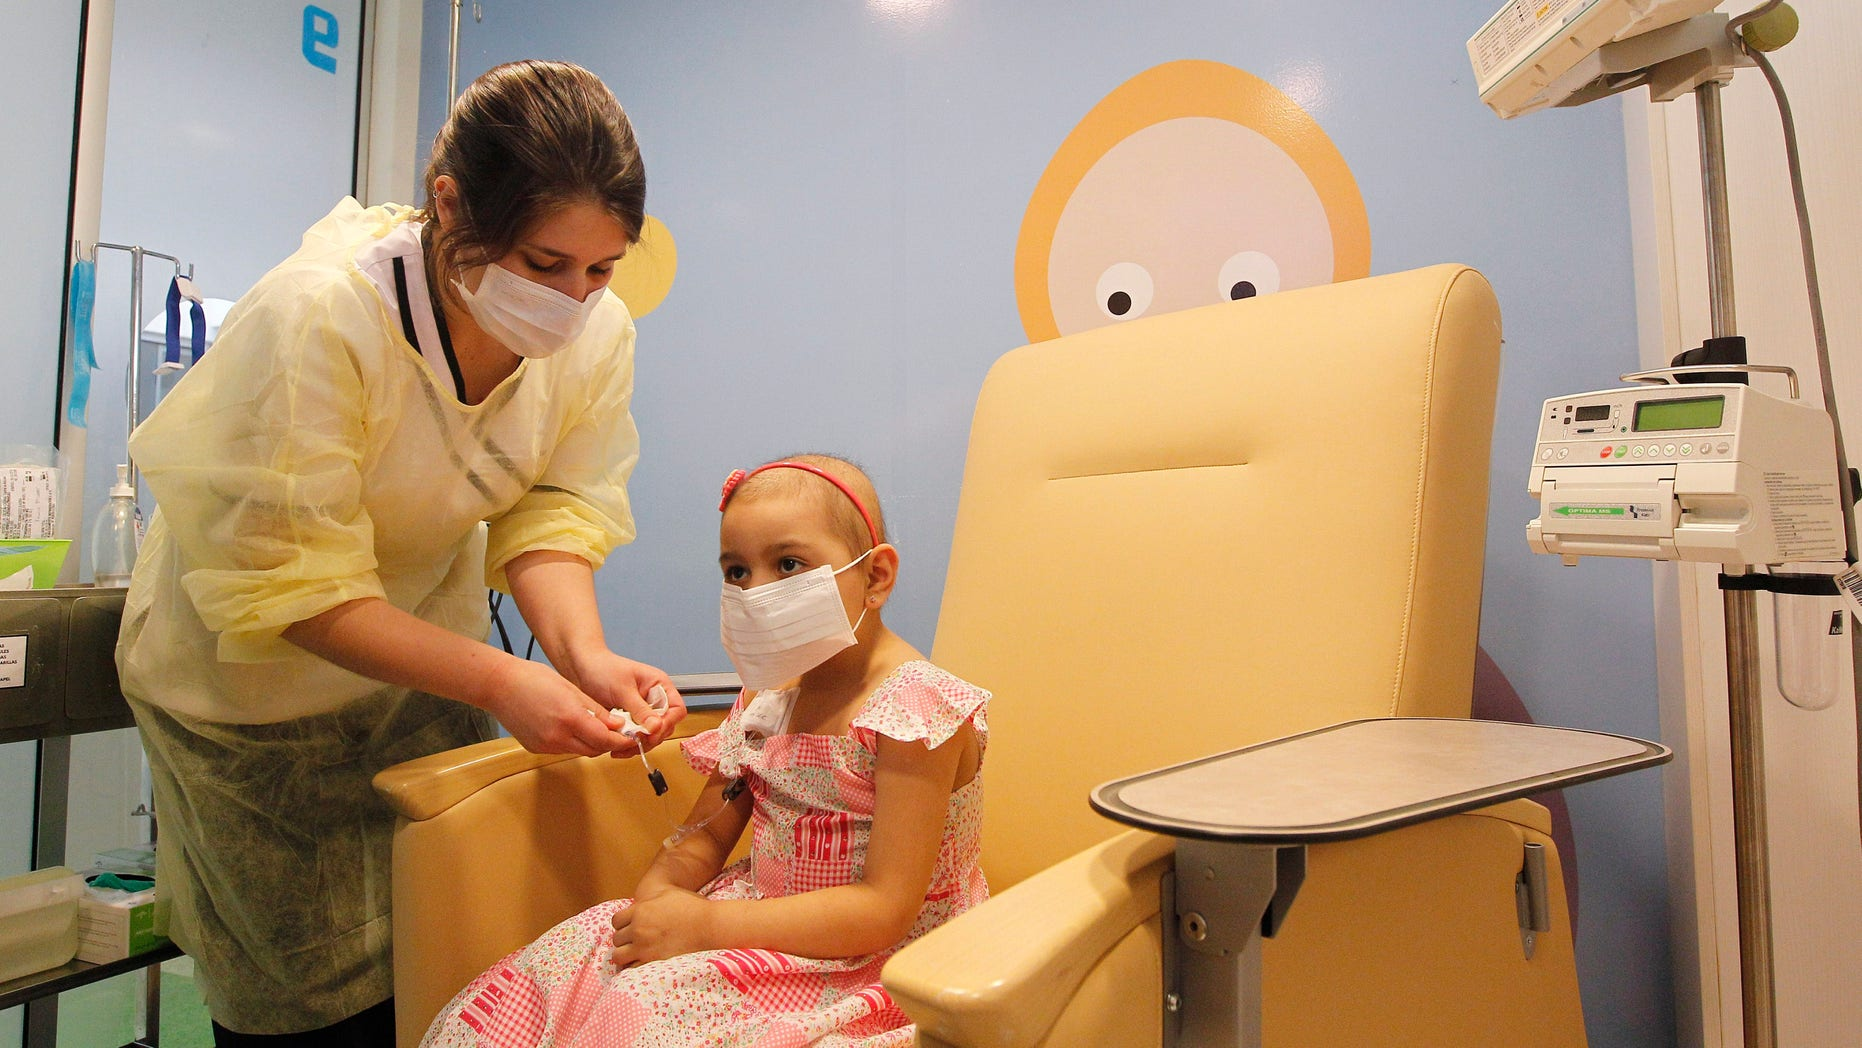 Alexandra Munoz, 5, who lost her hair due to chemotherapy to treat a malignant brain tumor, undergoes a session of treatment with the help of a nurse in the cancer ward of the Luis Calvo Mackenna Hospital in Santiago, October 20, 2014. REUTERS/Rodrigo Garrido